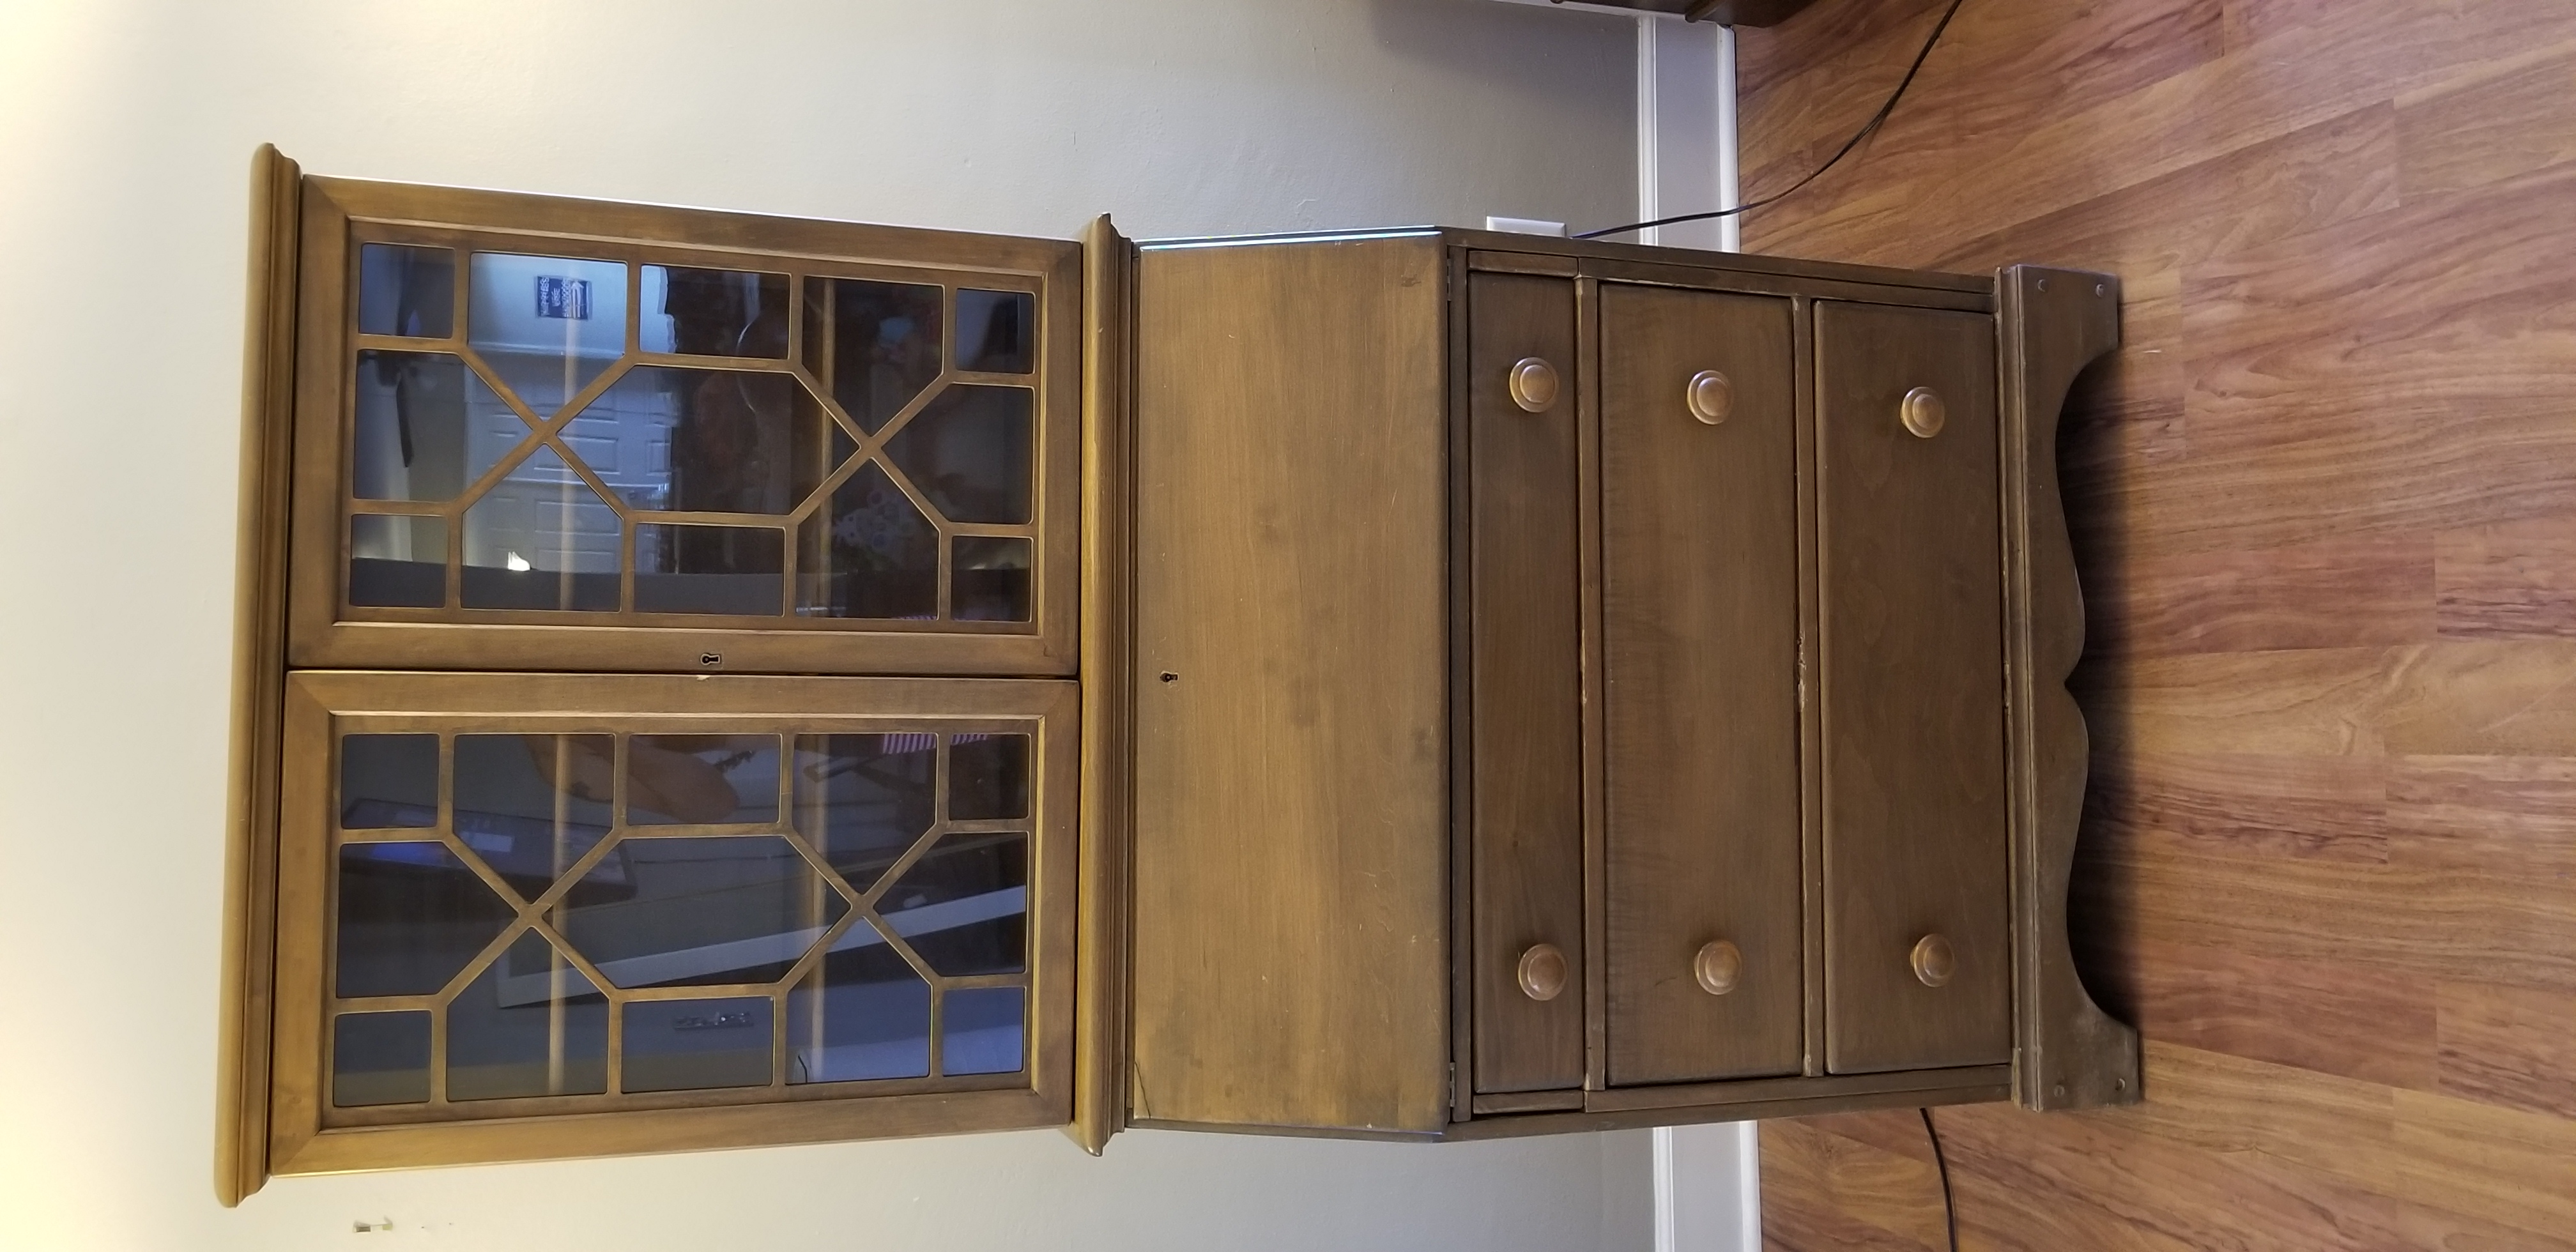 antique shipping and home server garden valley prescott today product overstock hutch honey free